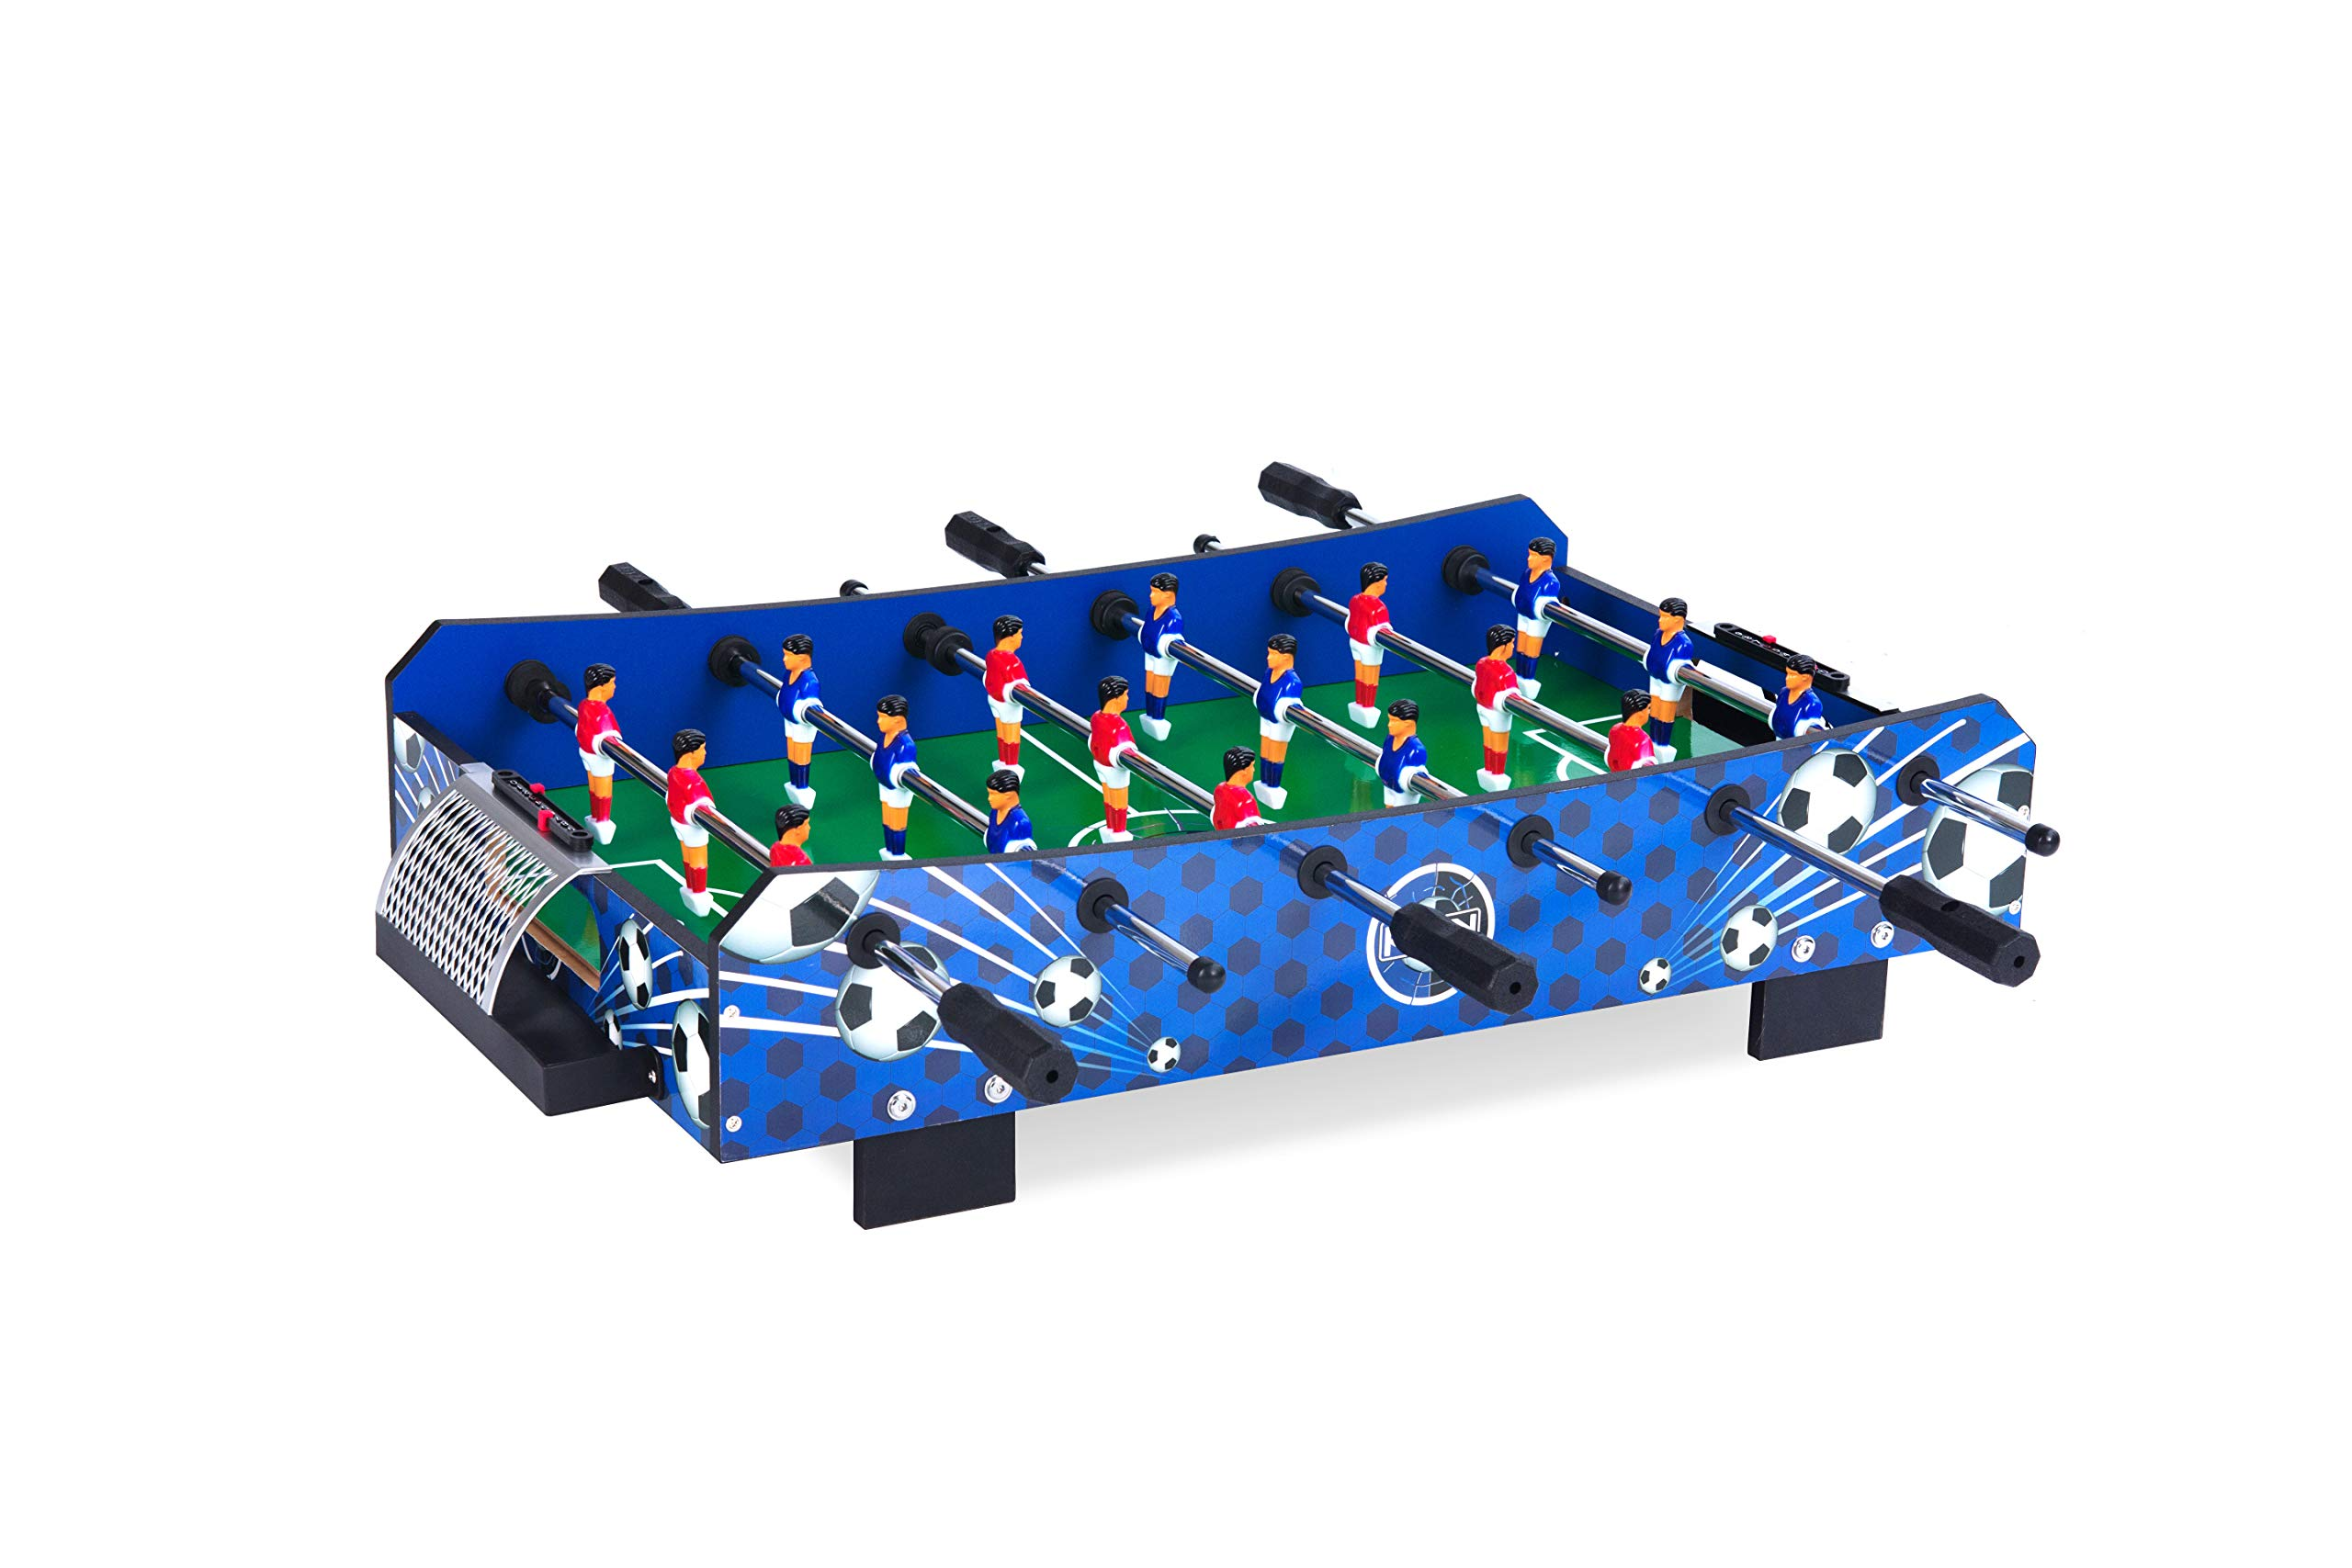 KICK Squire 33'' in Compact Mini Tabletop Foosball Table by KICK